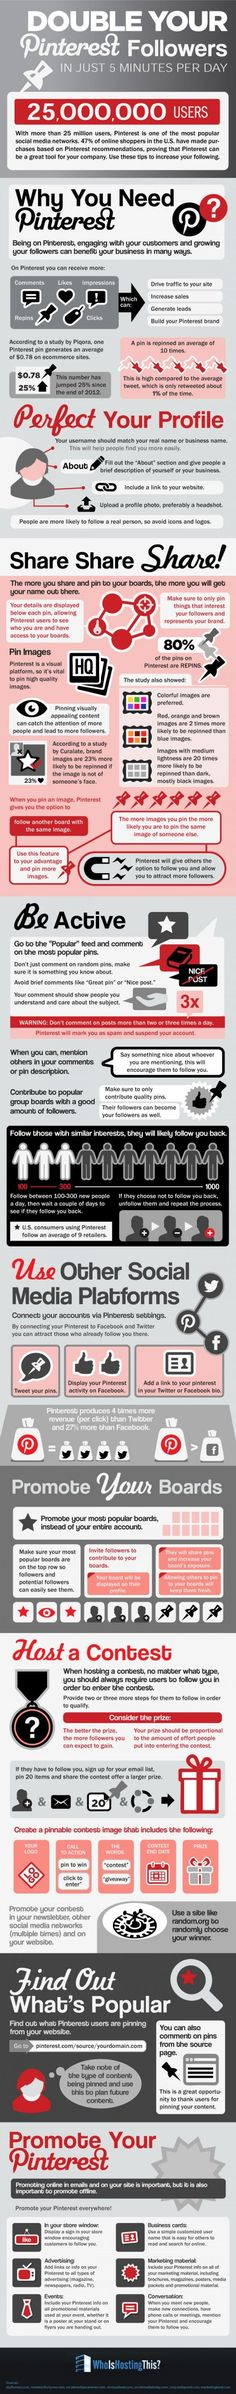 Infographic - How to double your Pinterest followers in just 5 minutes per day.